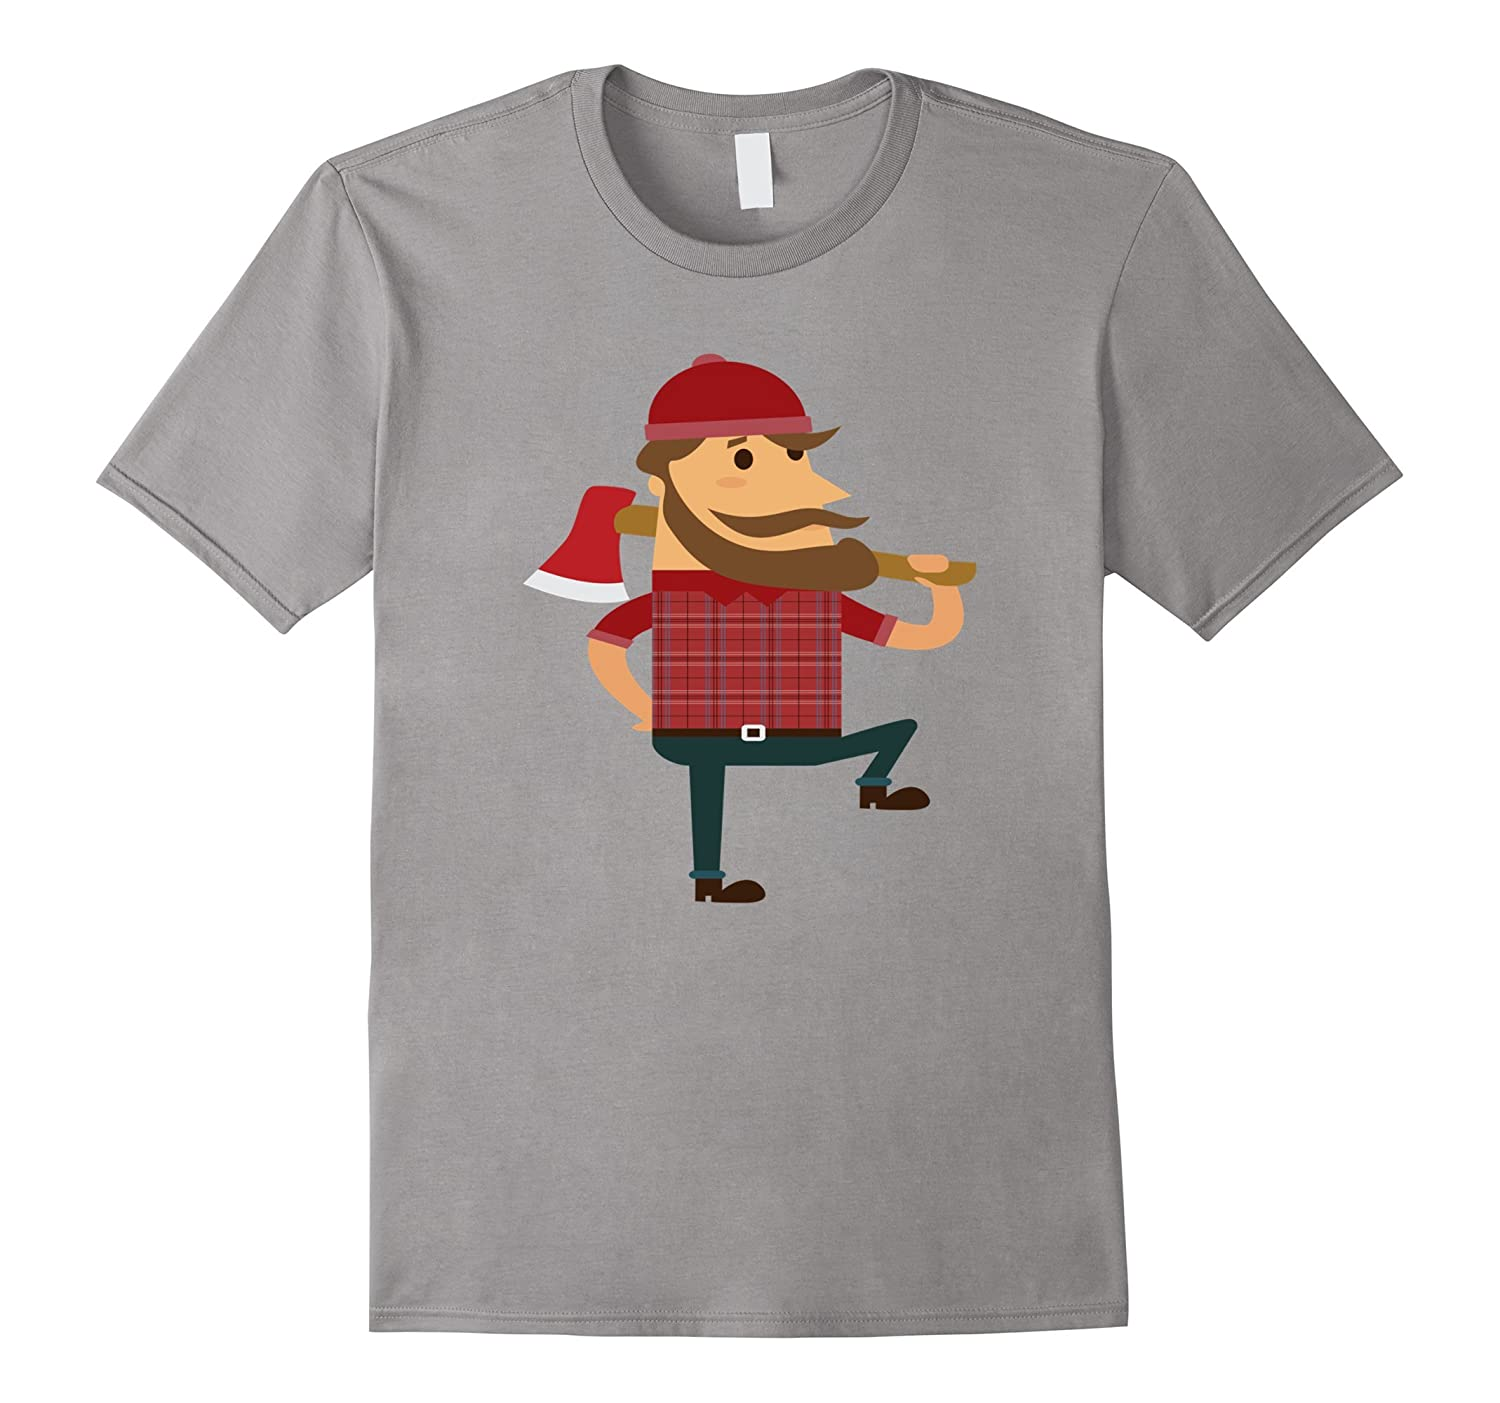 Lumberjack T-Shirt Hipster Mountain Man Flannel Axe Tee-FL